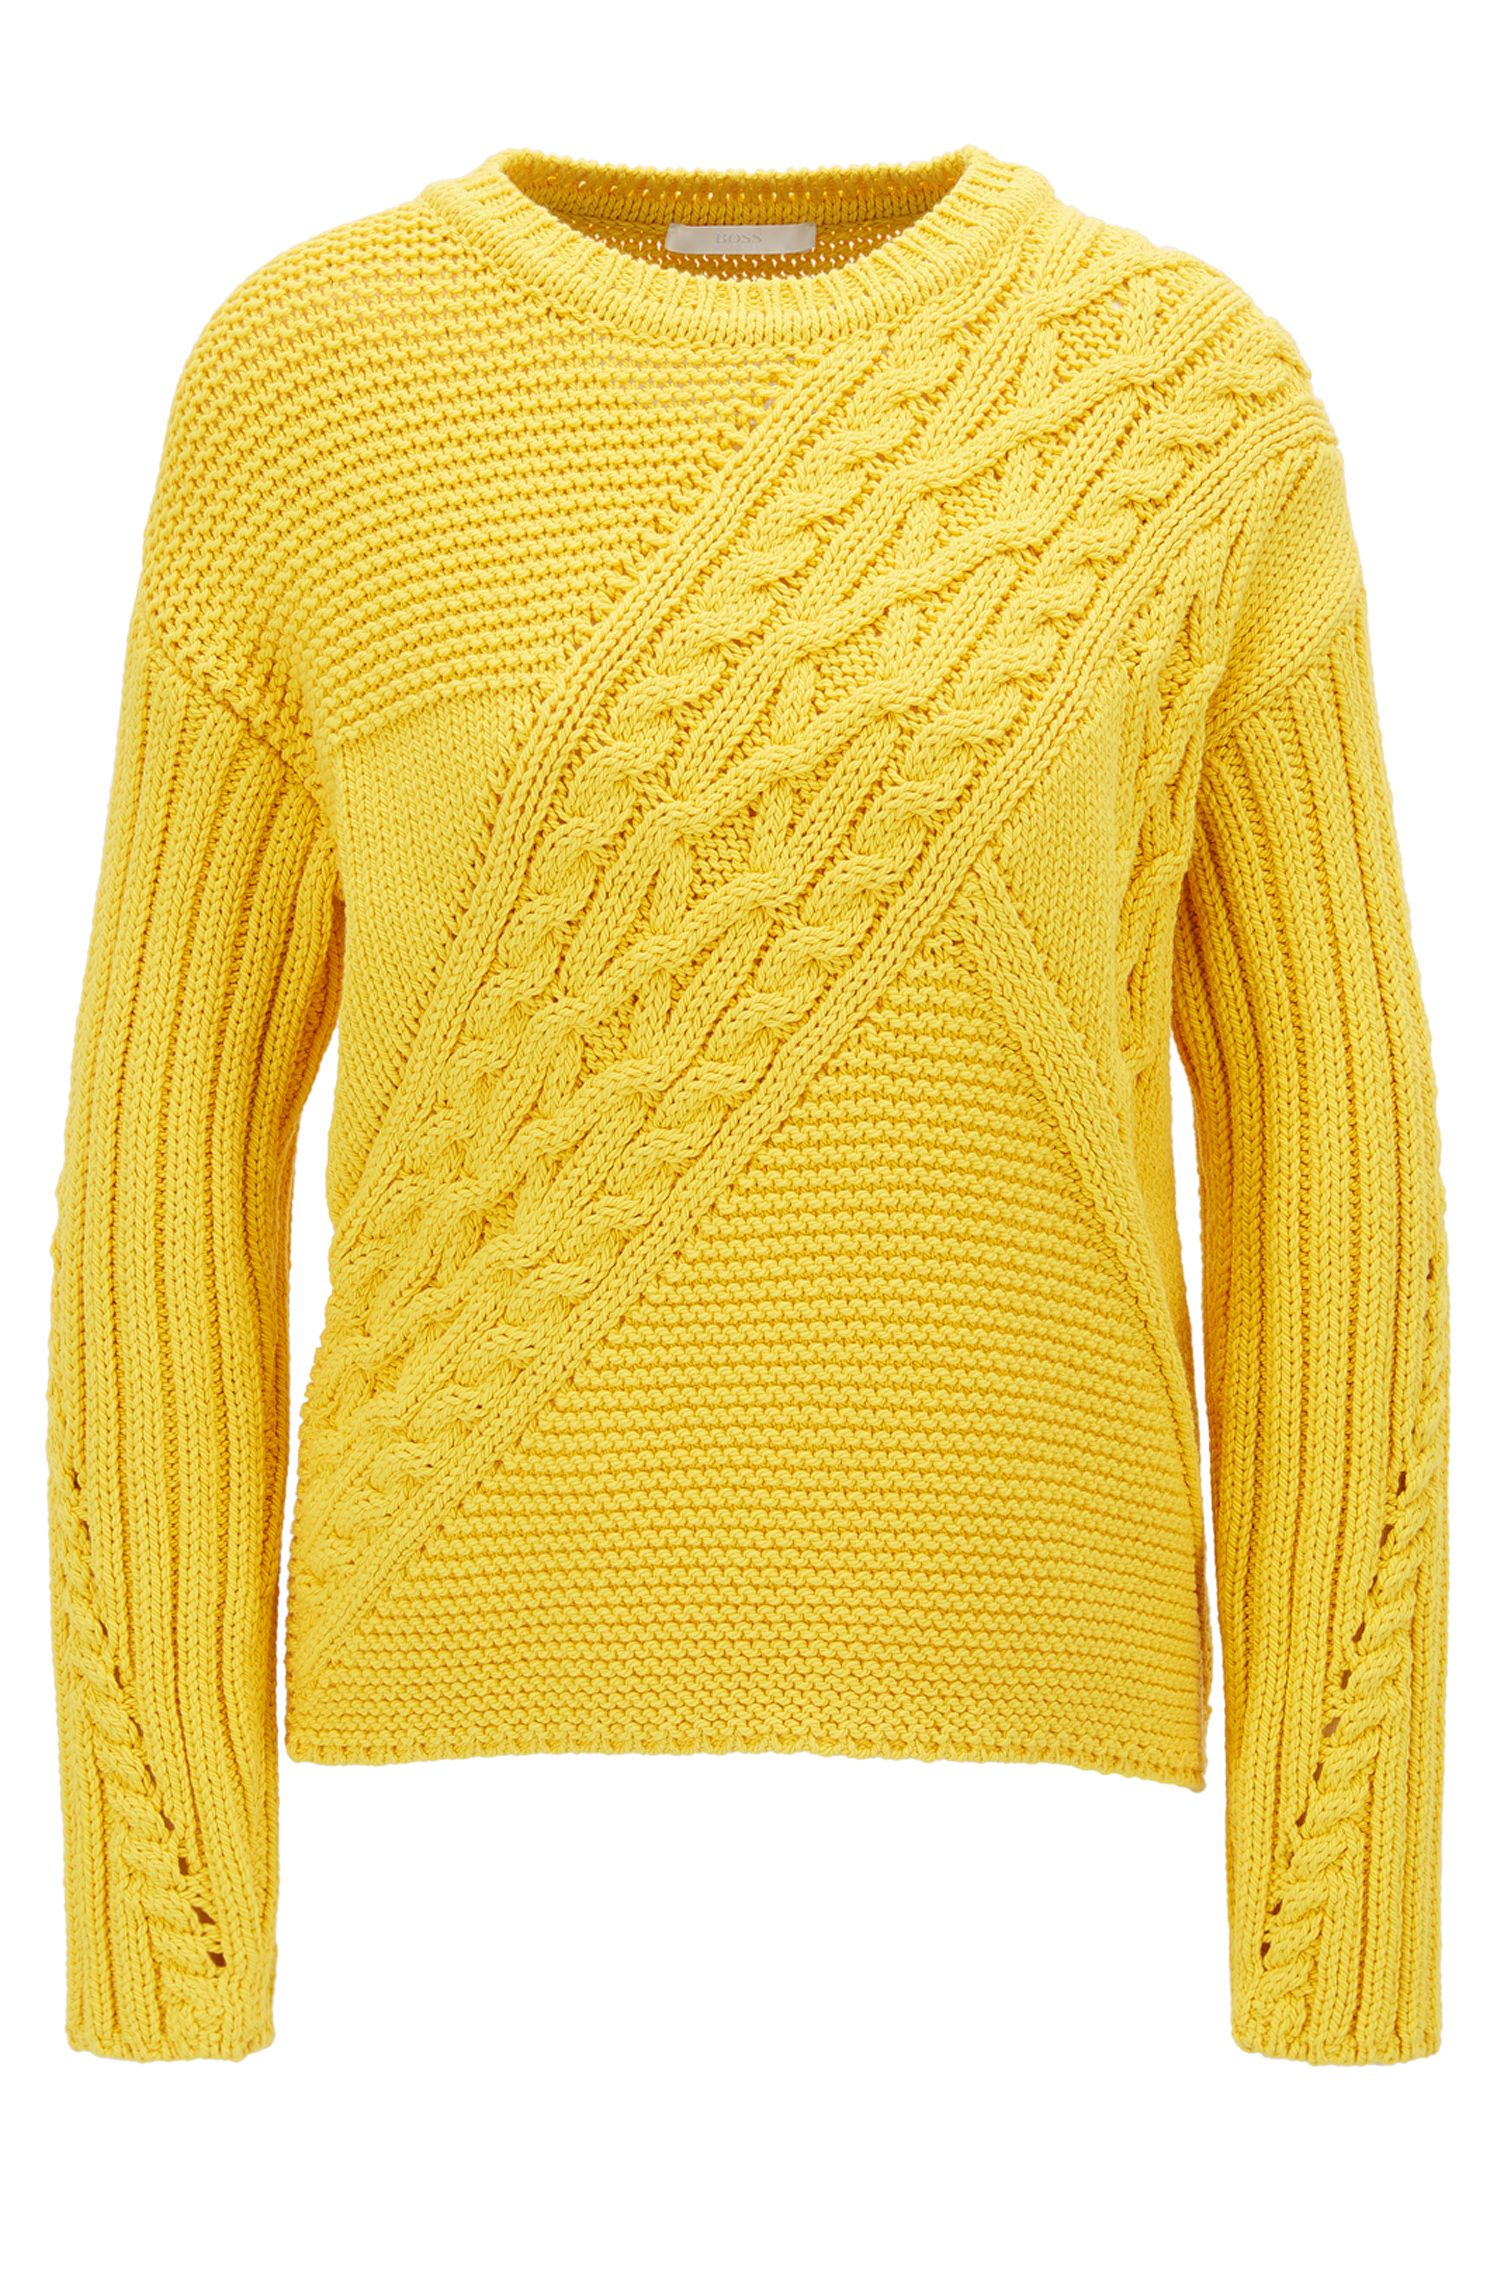 Cotton-blend sweater in a patchworked knit